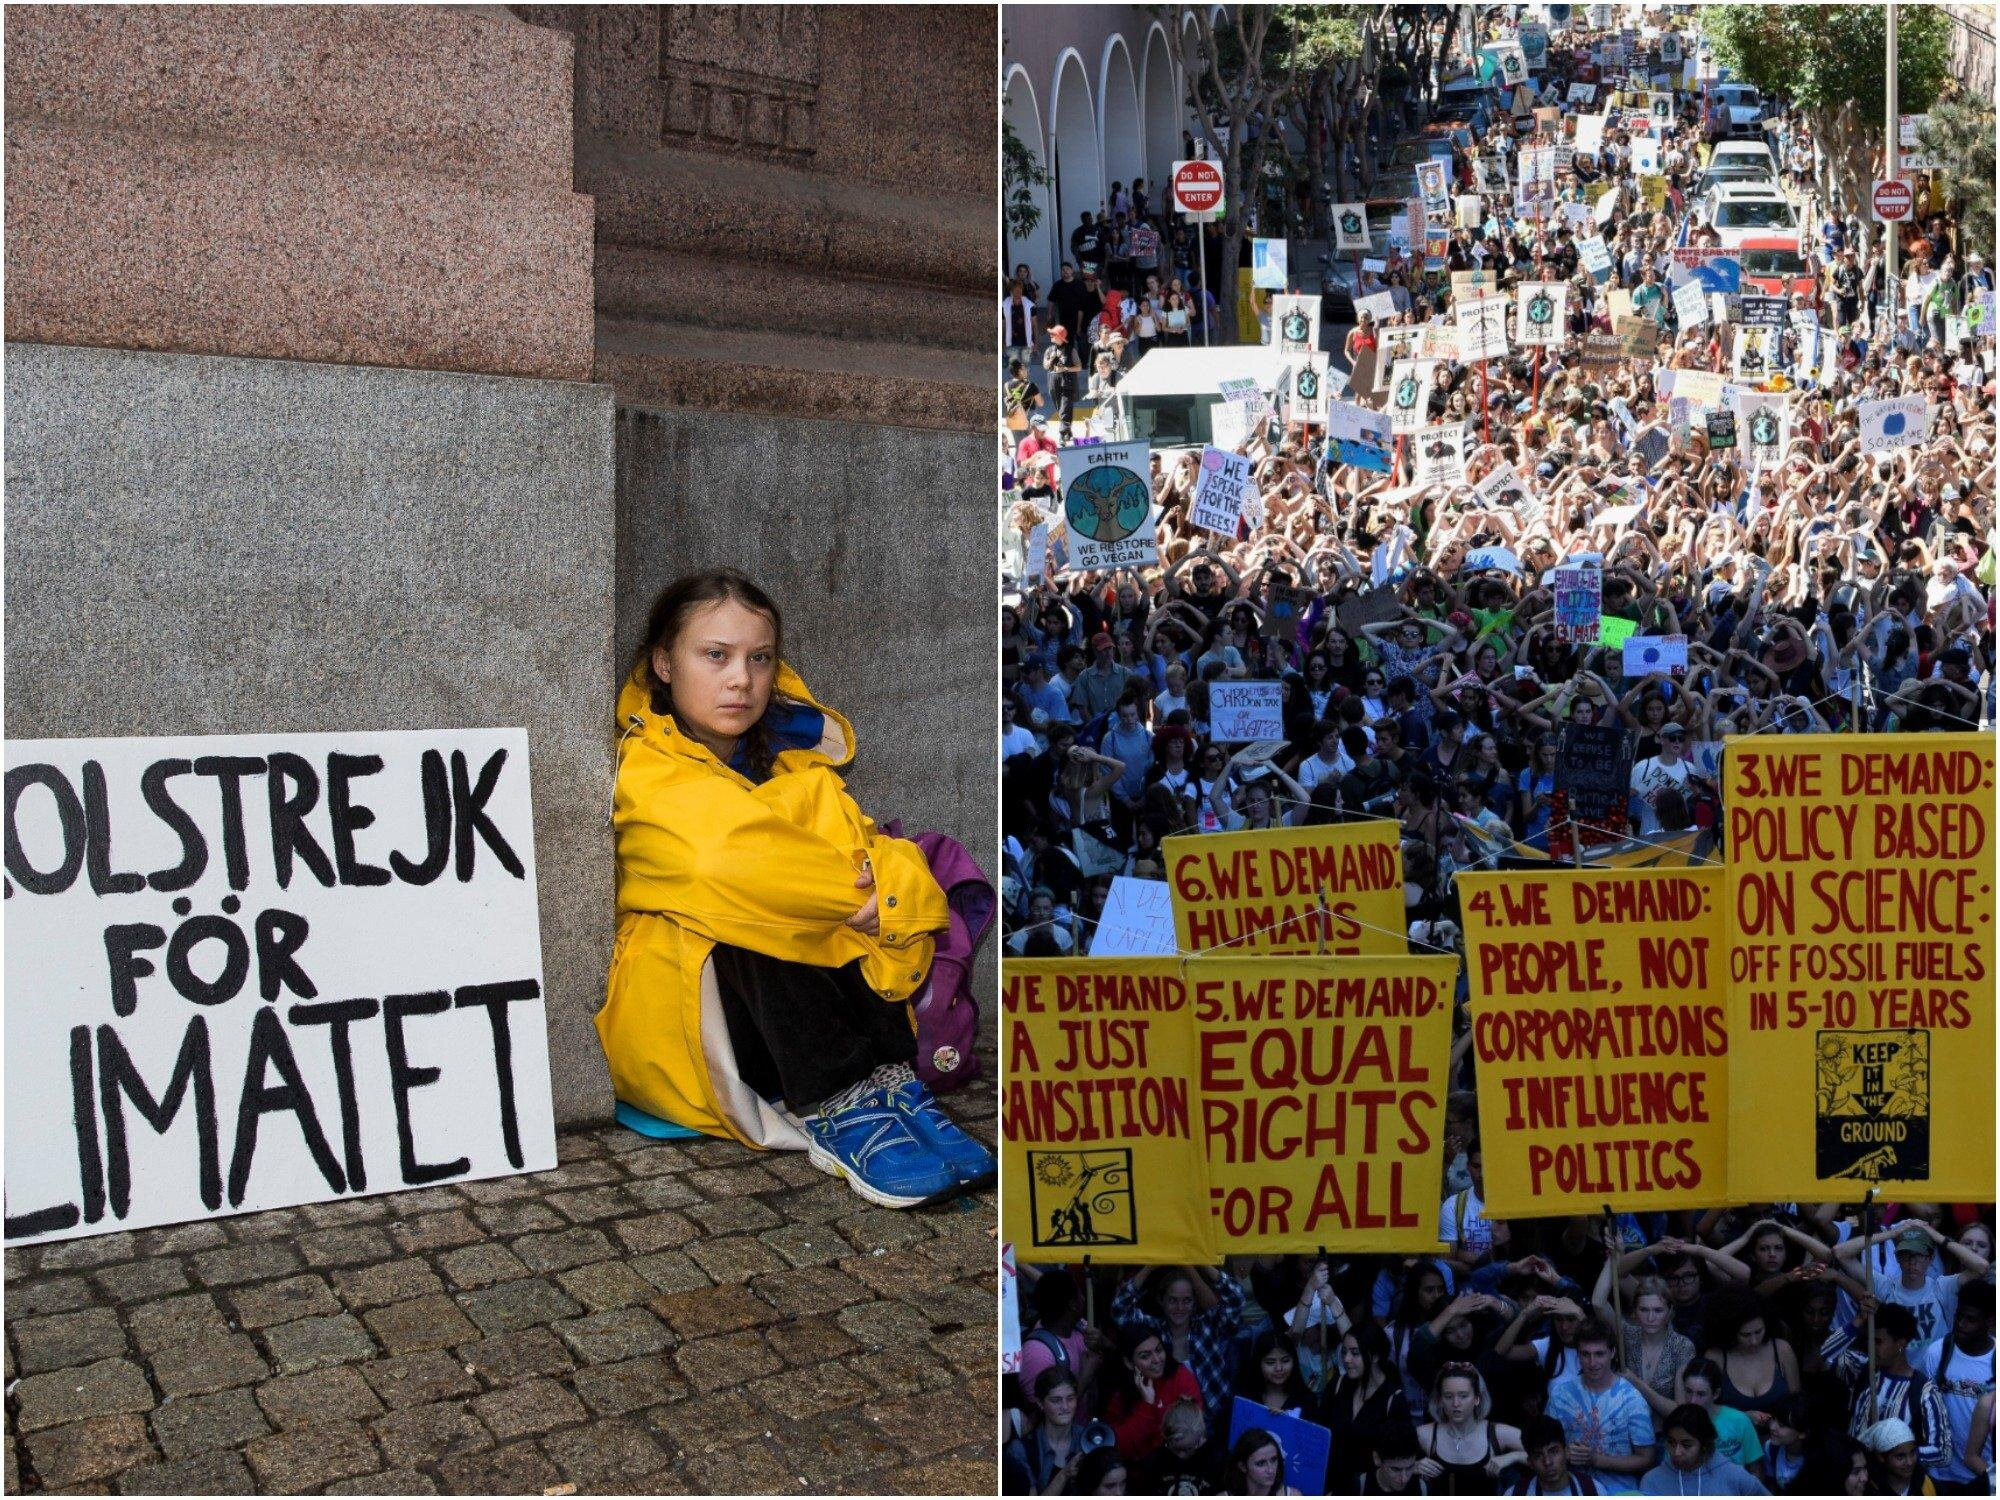 The climate strike a year ago; the climate strikes today